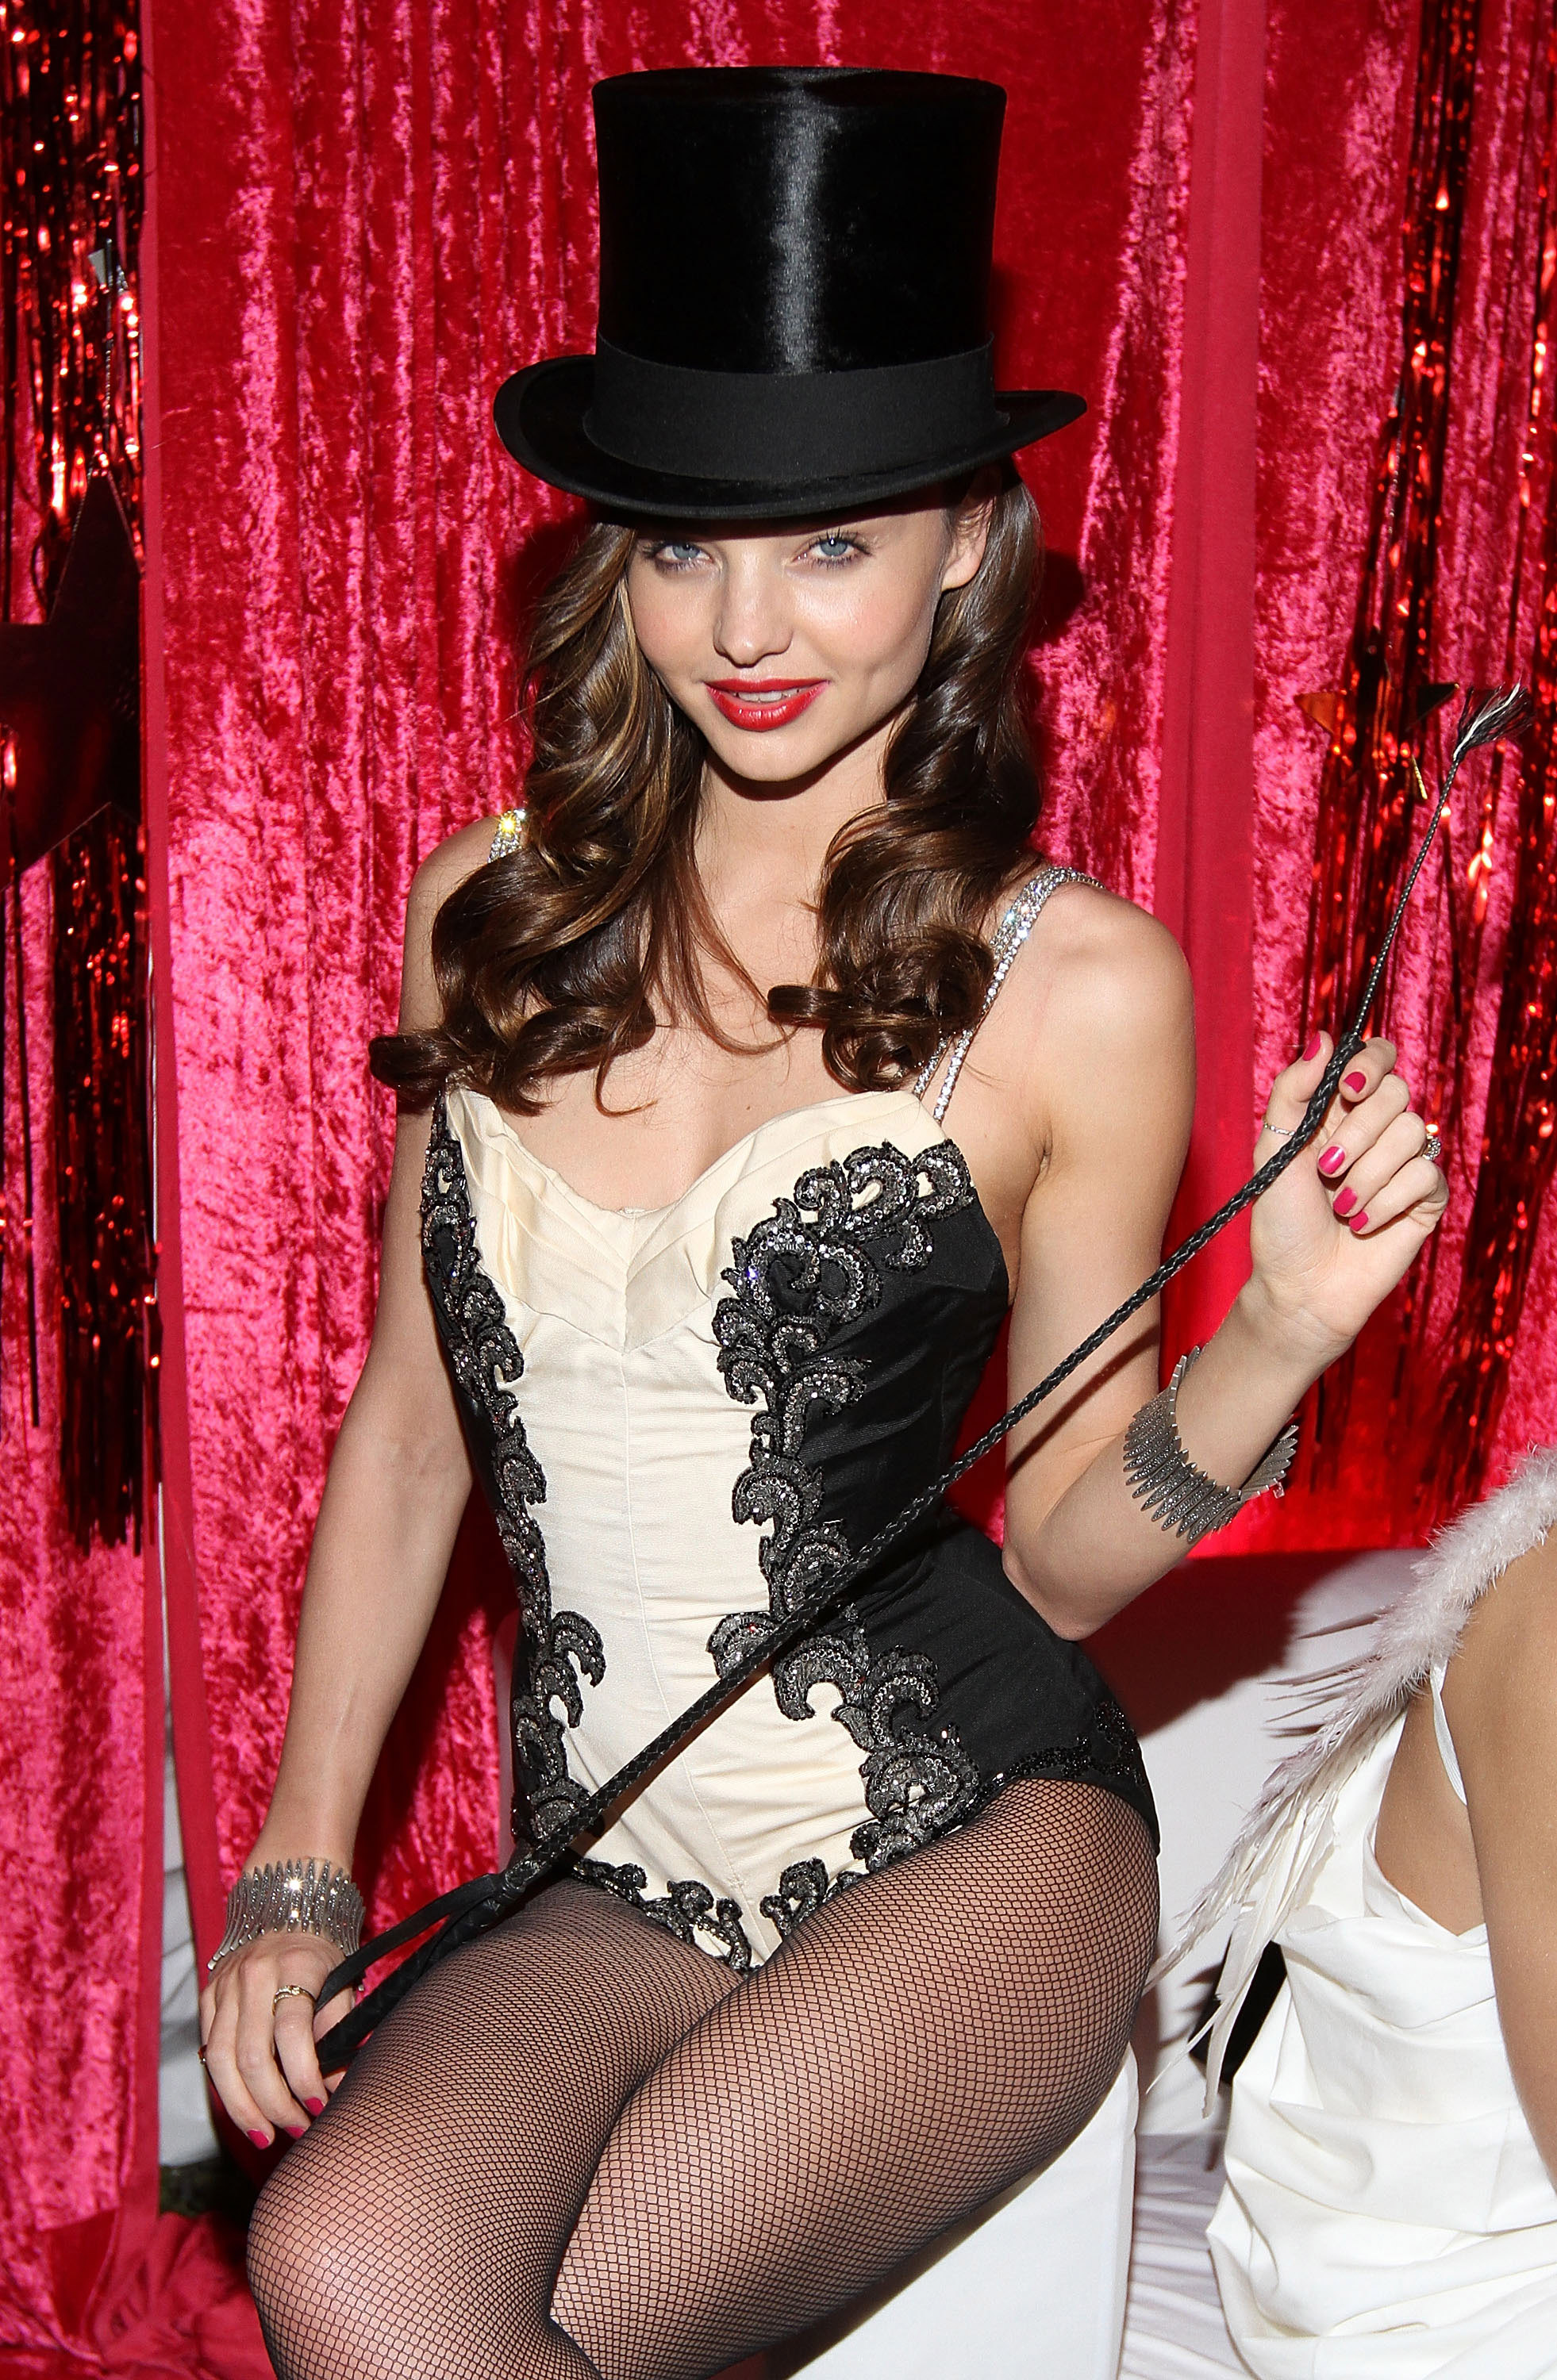 Miranda Kerr hosted a circus-themed party for Halloween in NYC.